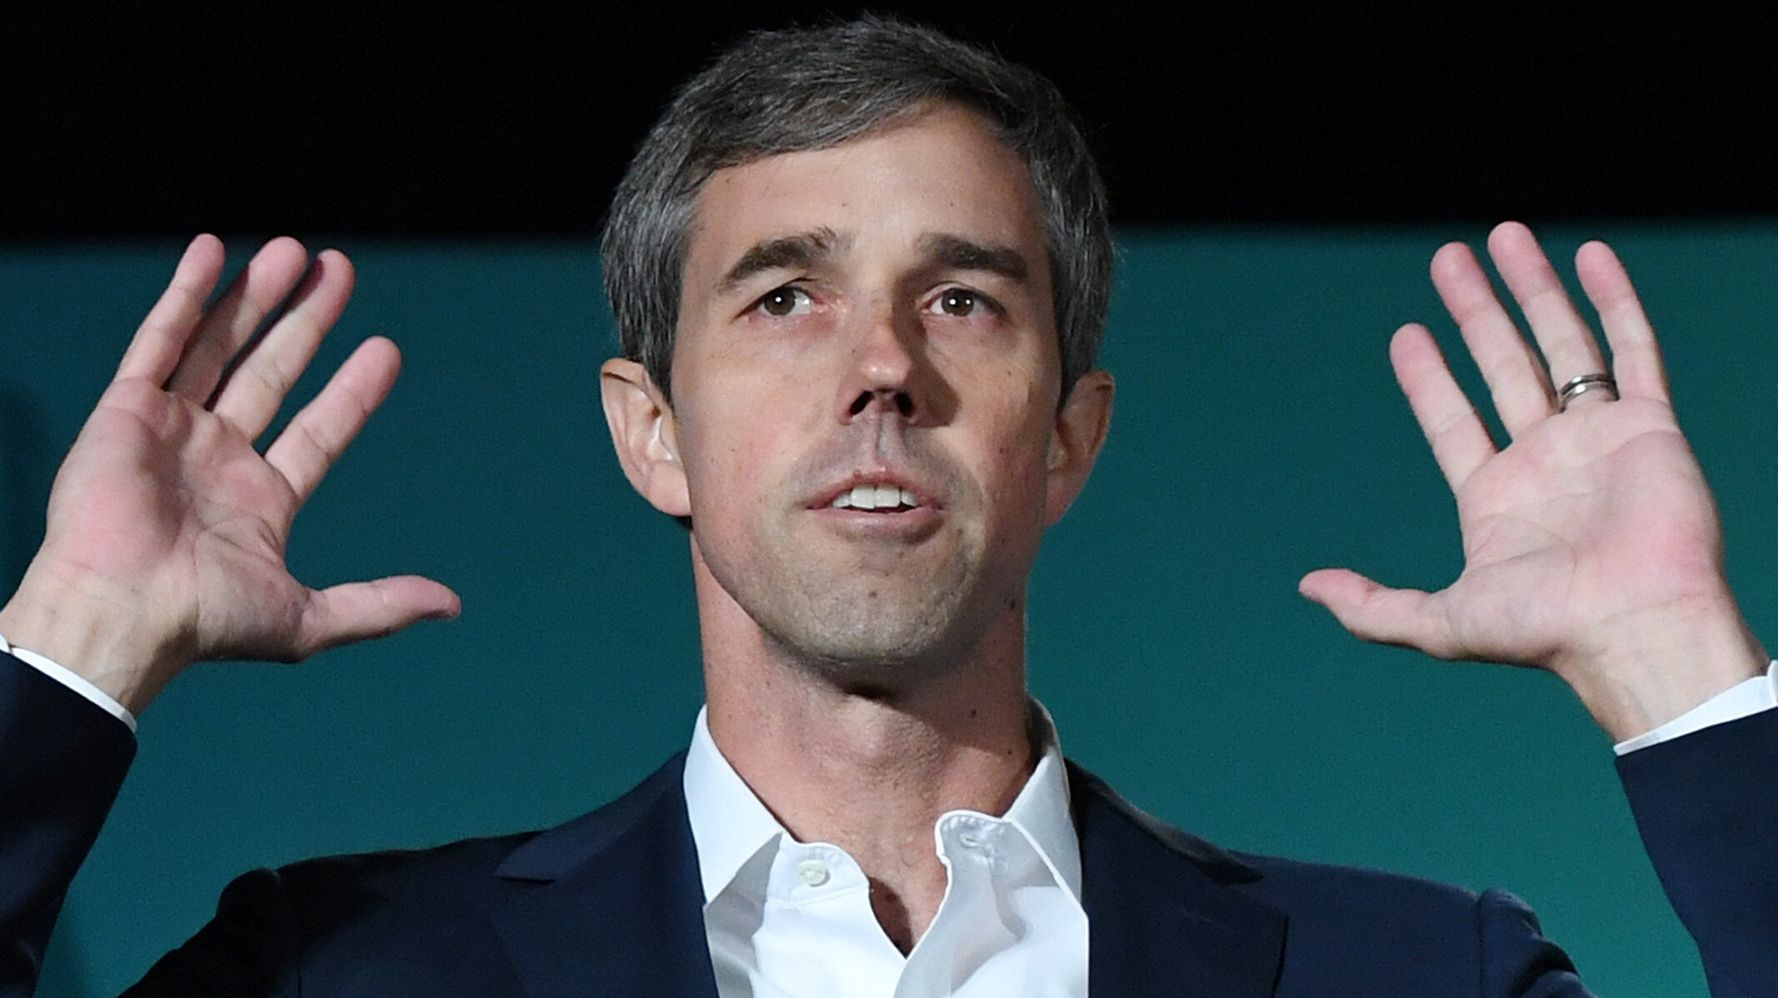 Westlake Legal Group 5d525b342200005500f4ef9d Houston Chronicle Editorial Board Calls On Beto O'Rourke To Drop Out